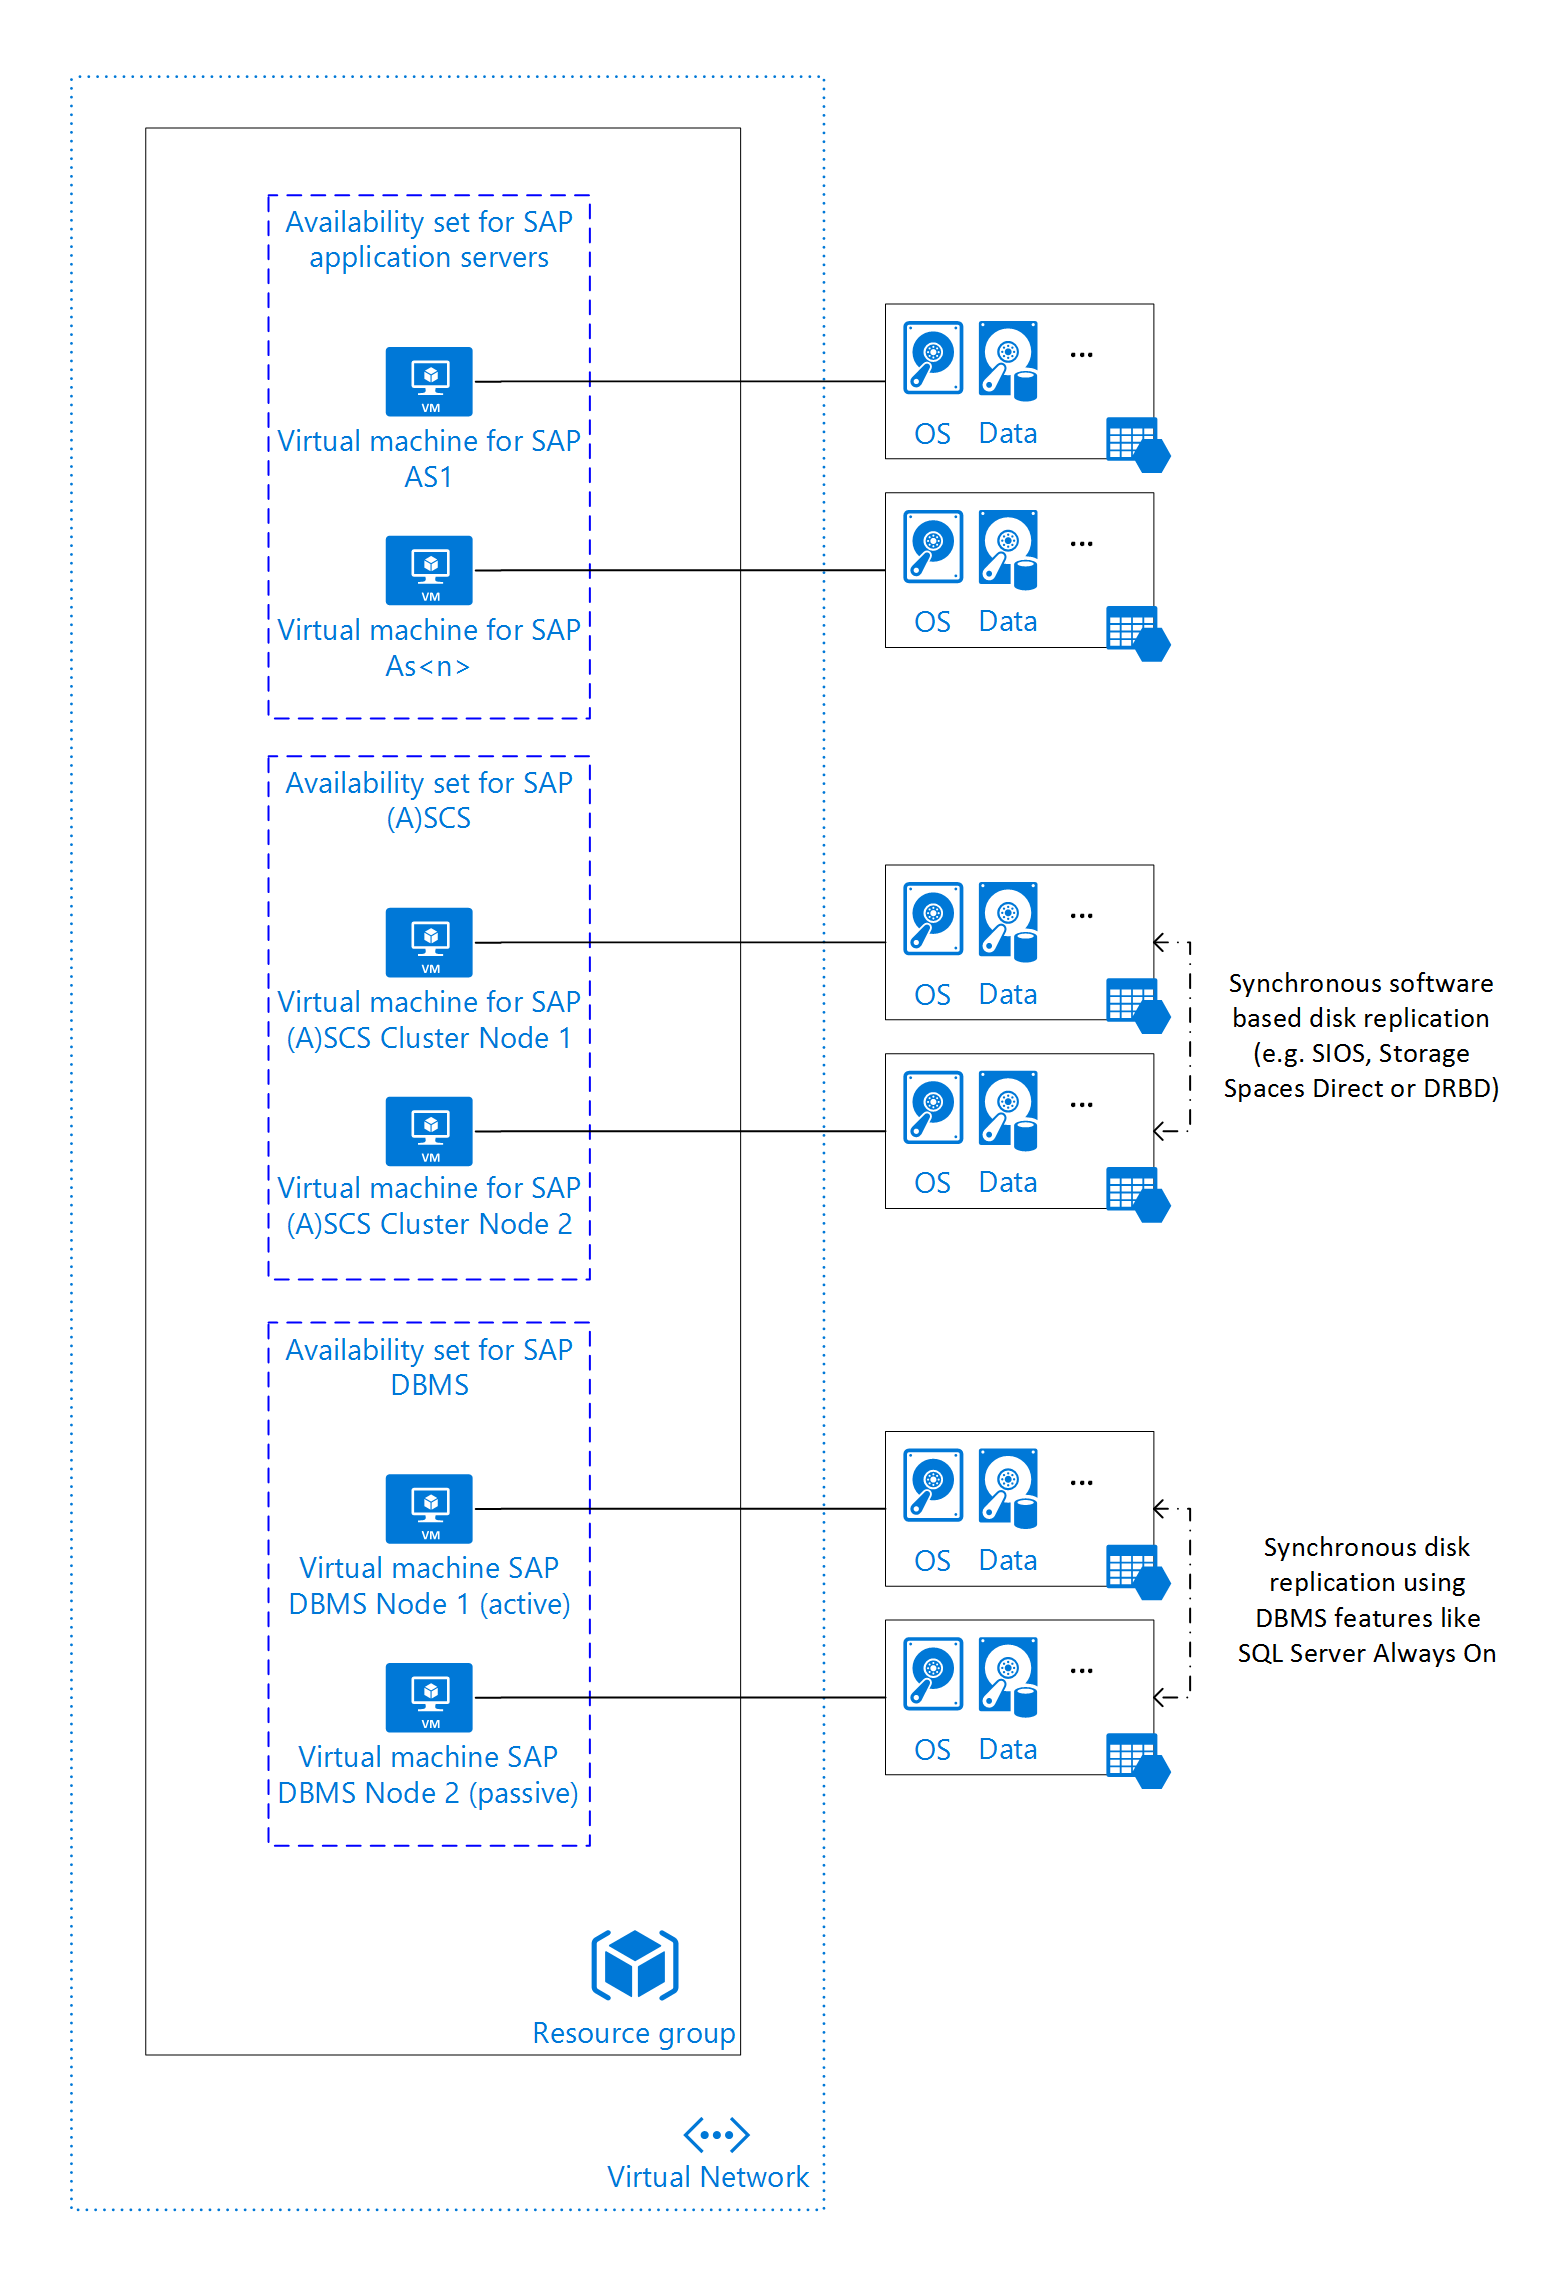 sap 3 tier architecture diagram 24v wiring azure virtual machines planning and implementation for